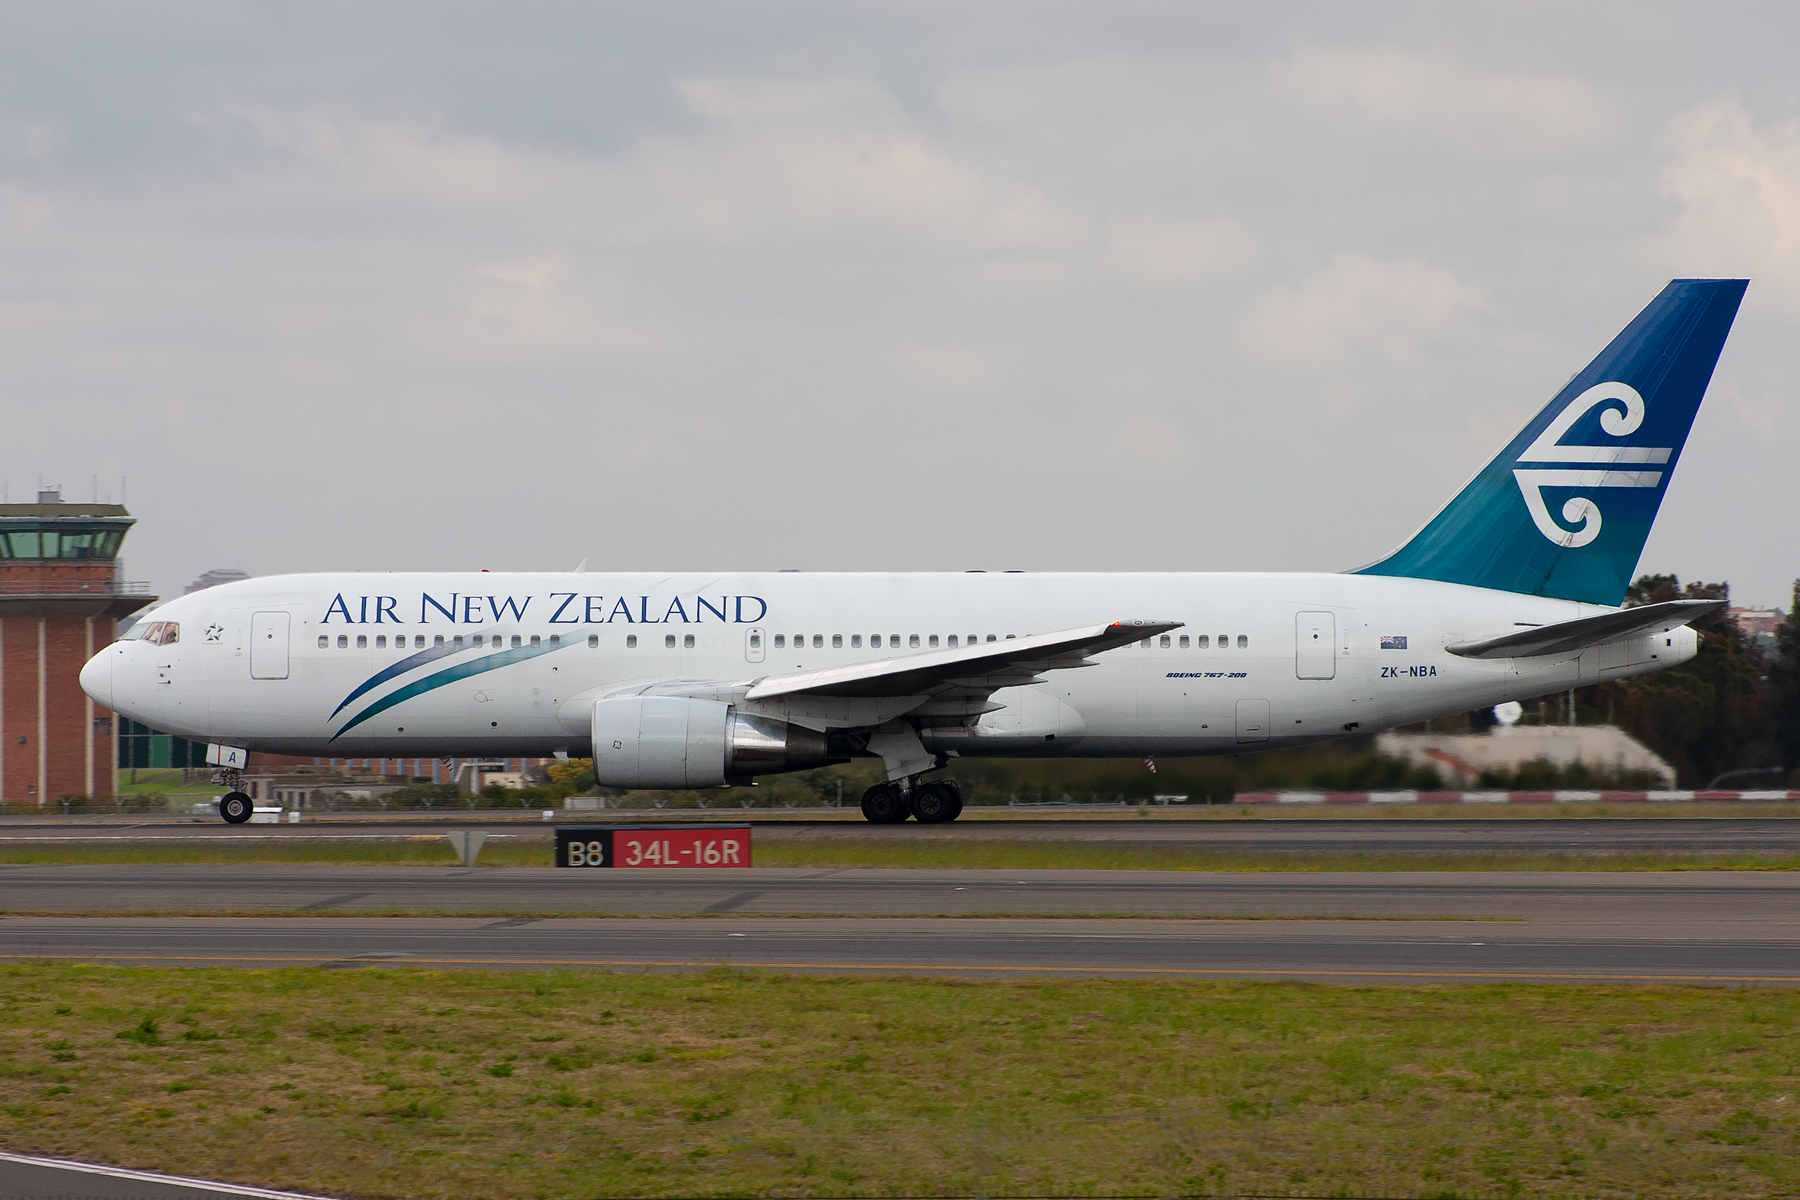 Air New Zealand Boeing 767-200ER ZK-NBA at Kingsford Smith